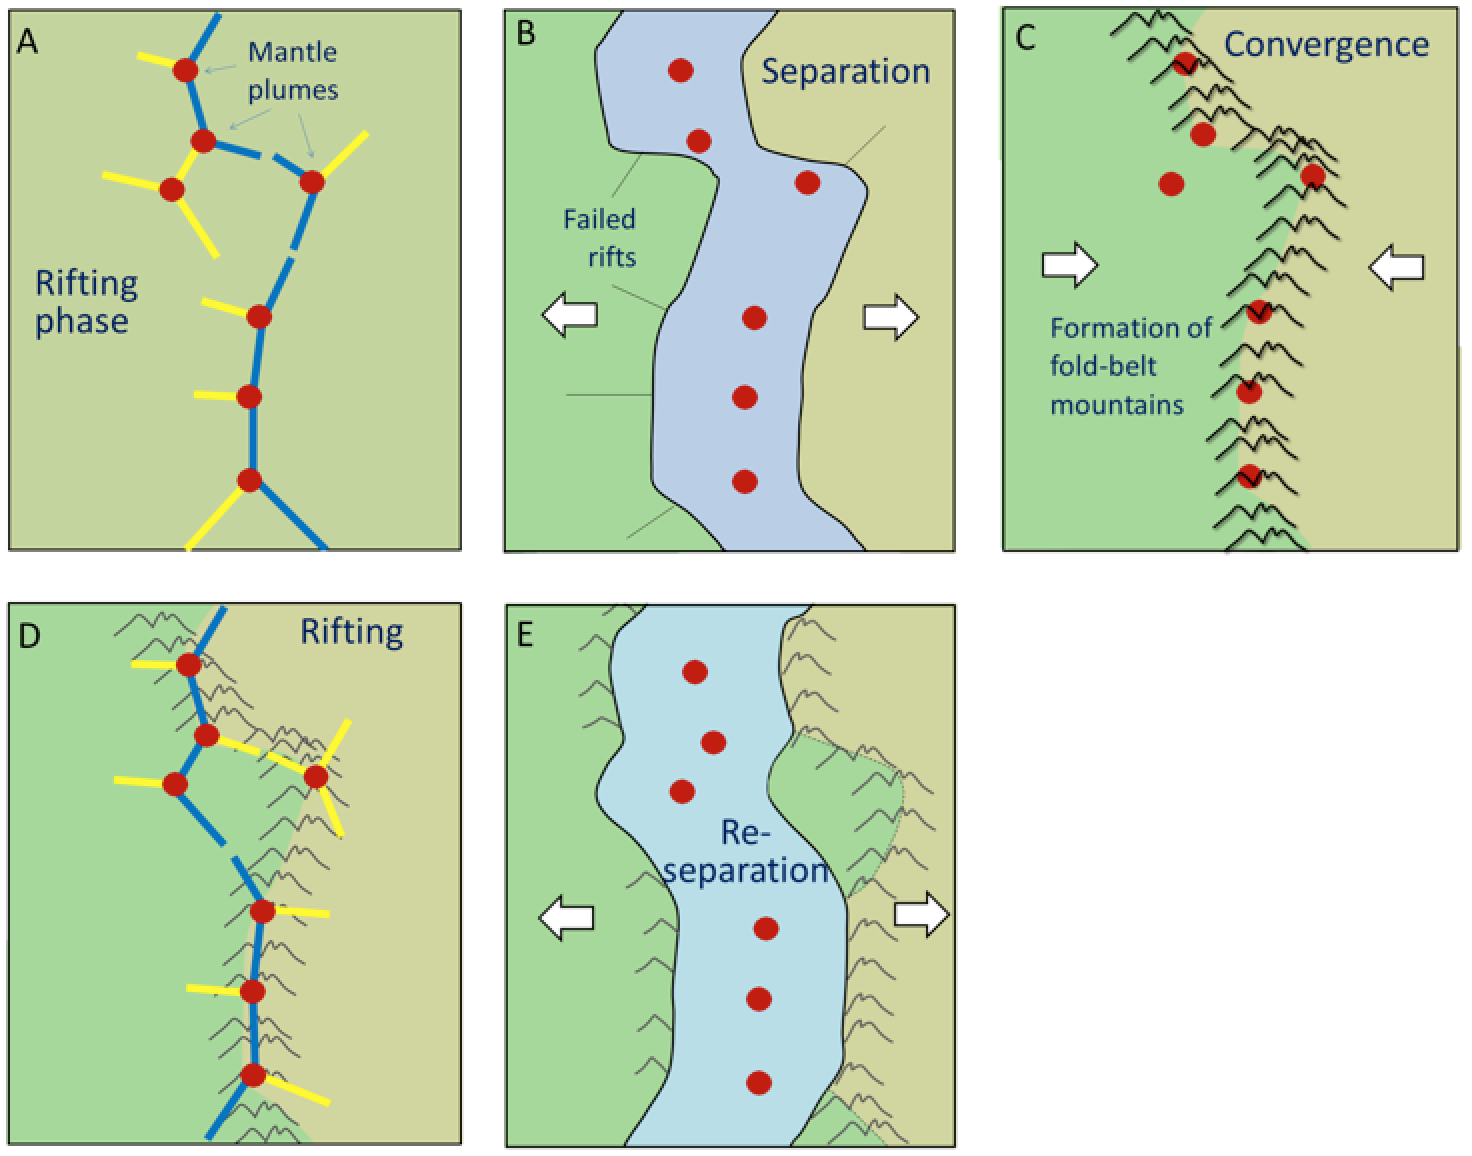 Figure 430 A Scenario For The Wilson Cycle The Cycle Starts With  Continental Rifting Above A Series Of Mantle Plumes (red Dots, A)